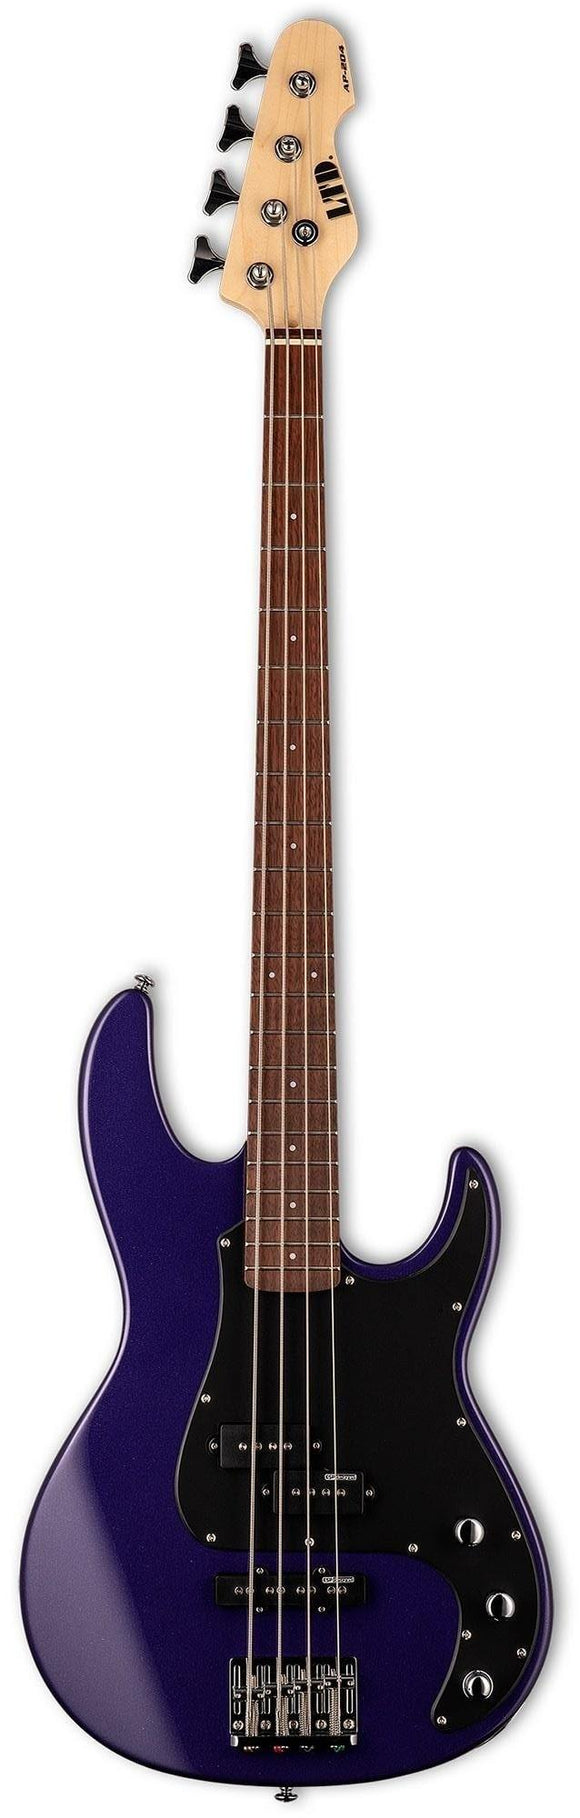 LTD LAP204DMP AP-204 4-String Electric Bass, Dark Metallic Purple